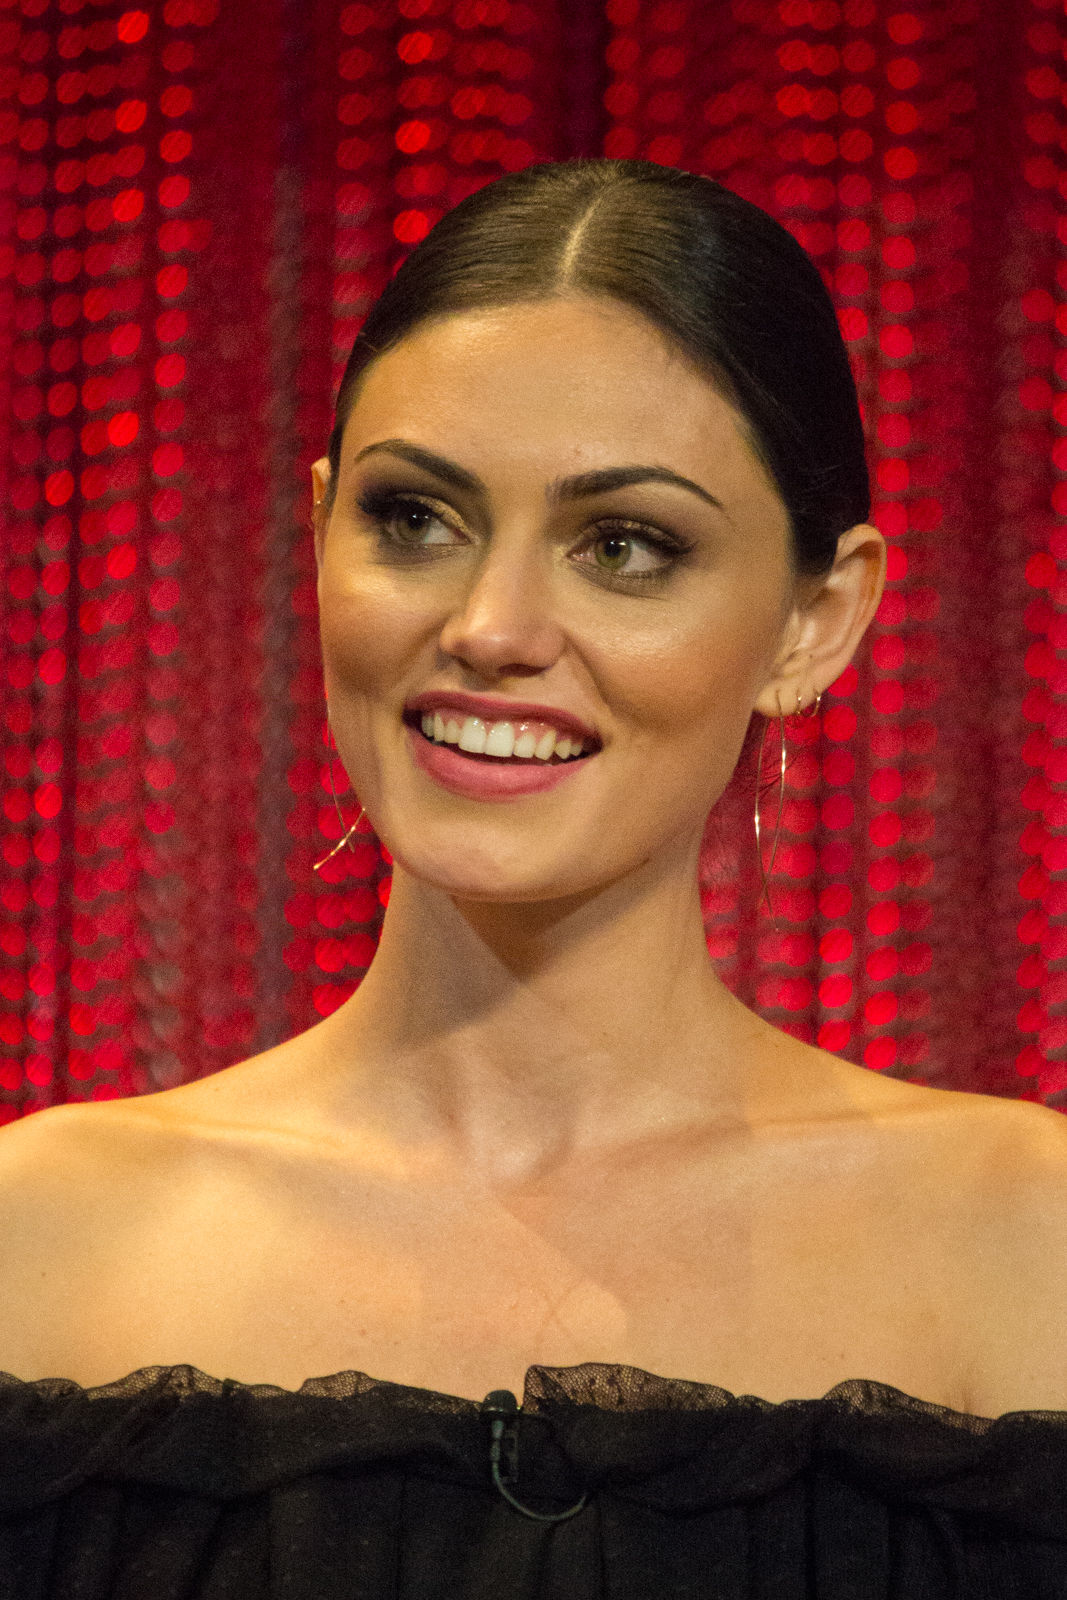 Photo of Phoebe Tonkin: Australian actress and model